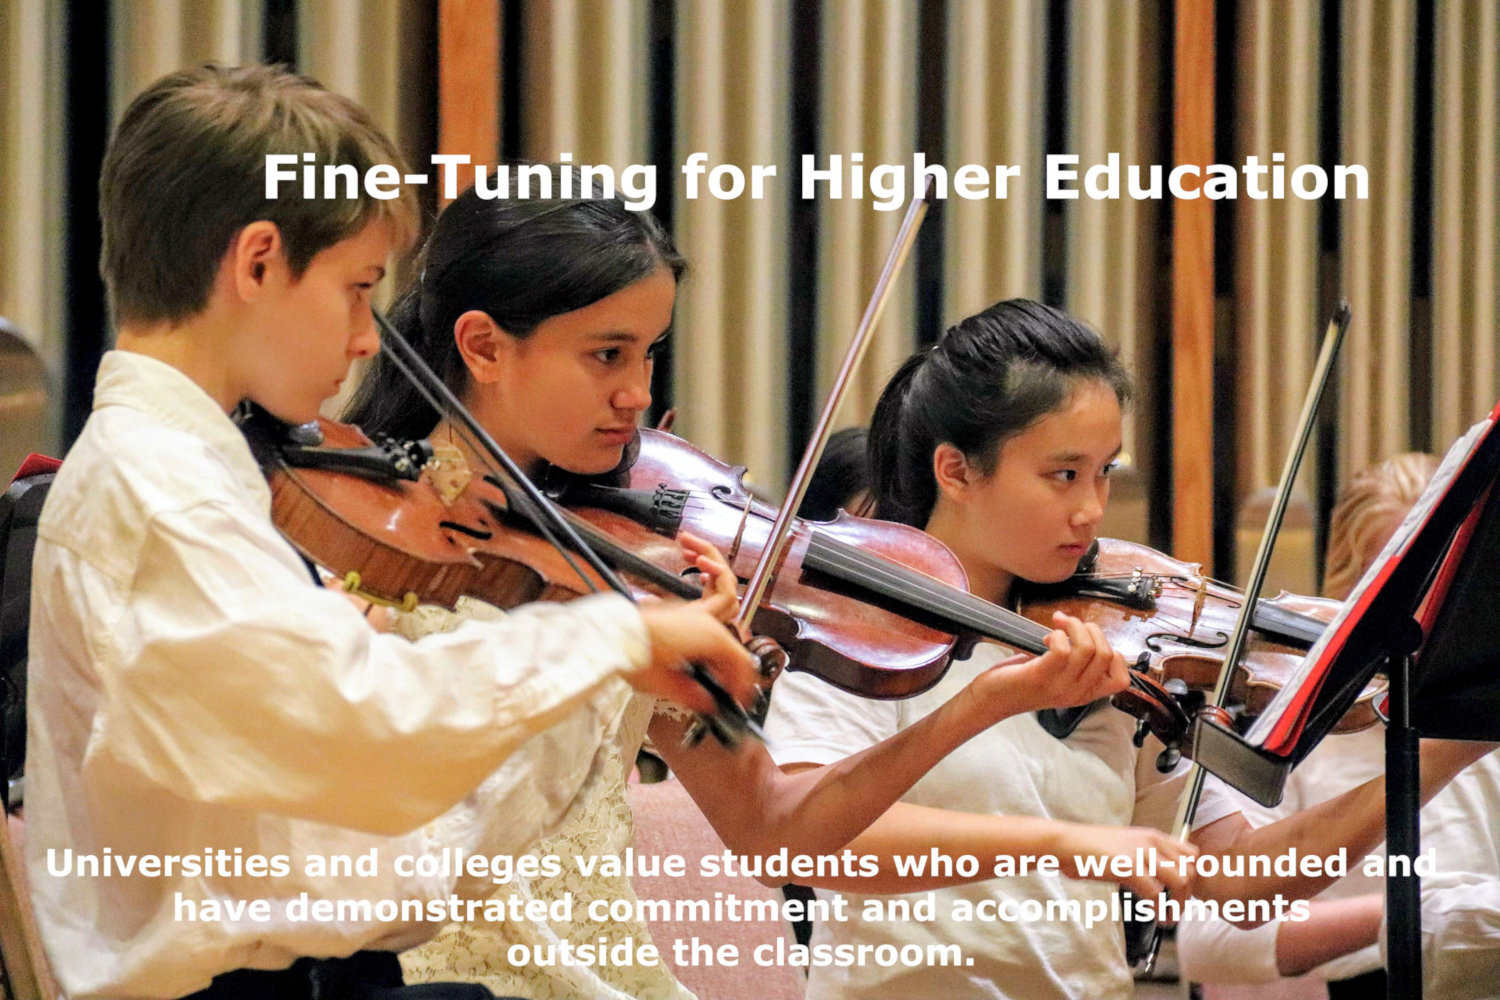 https://ggph.org/wp-content/uploads/5-GGP-Youth-Orchestra-Higher-Education-1.jpeg